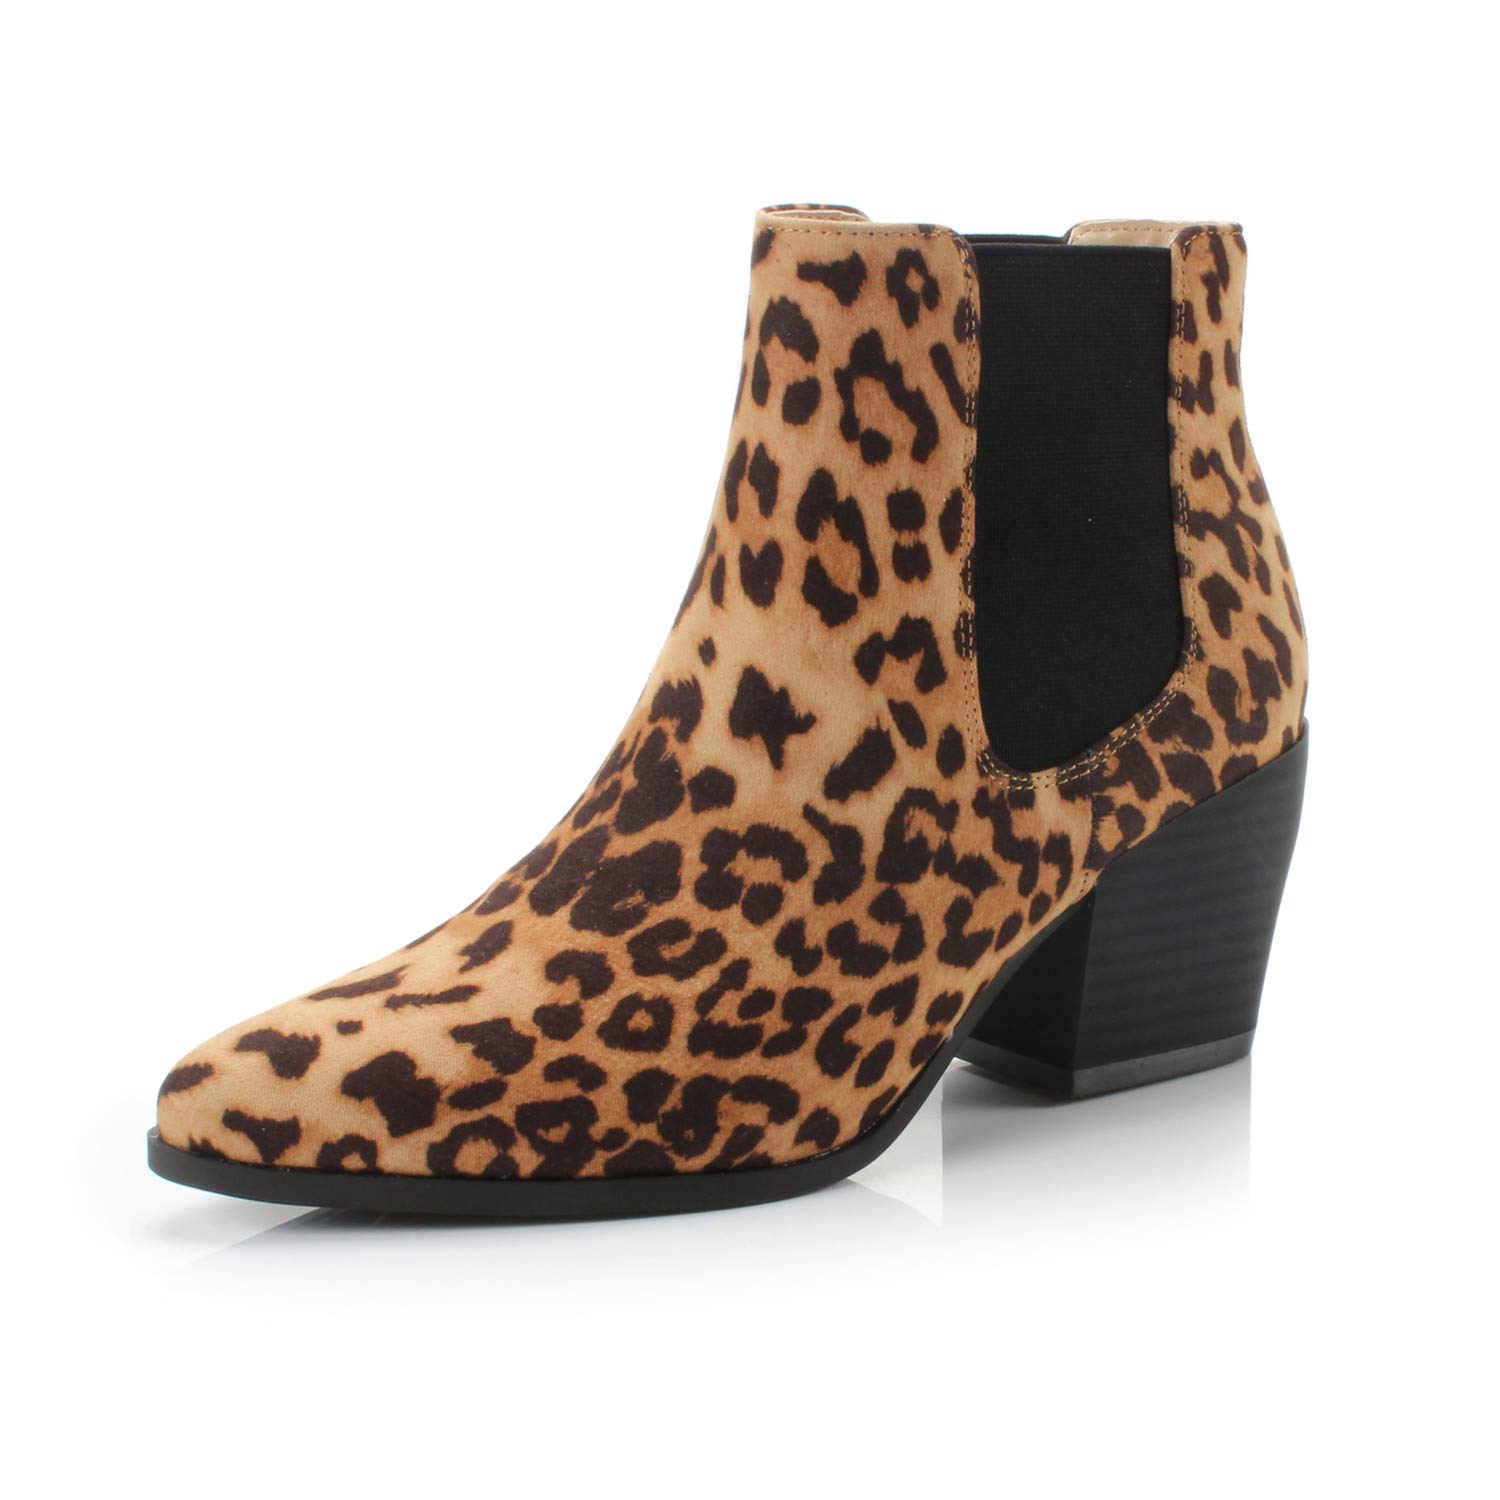 Bliss Leopard Fabric DUNION Women's Slip On Glamour Fashion Chunky Heel Ankle Boot